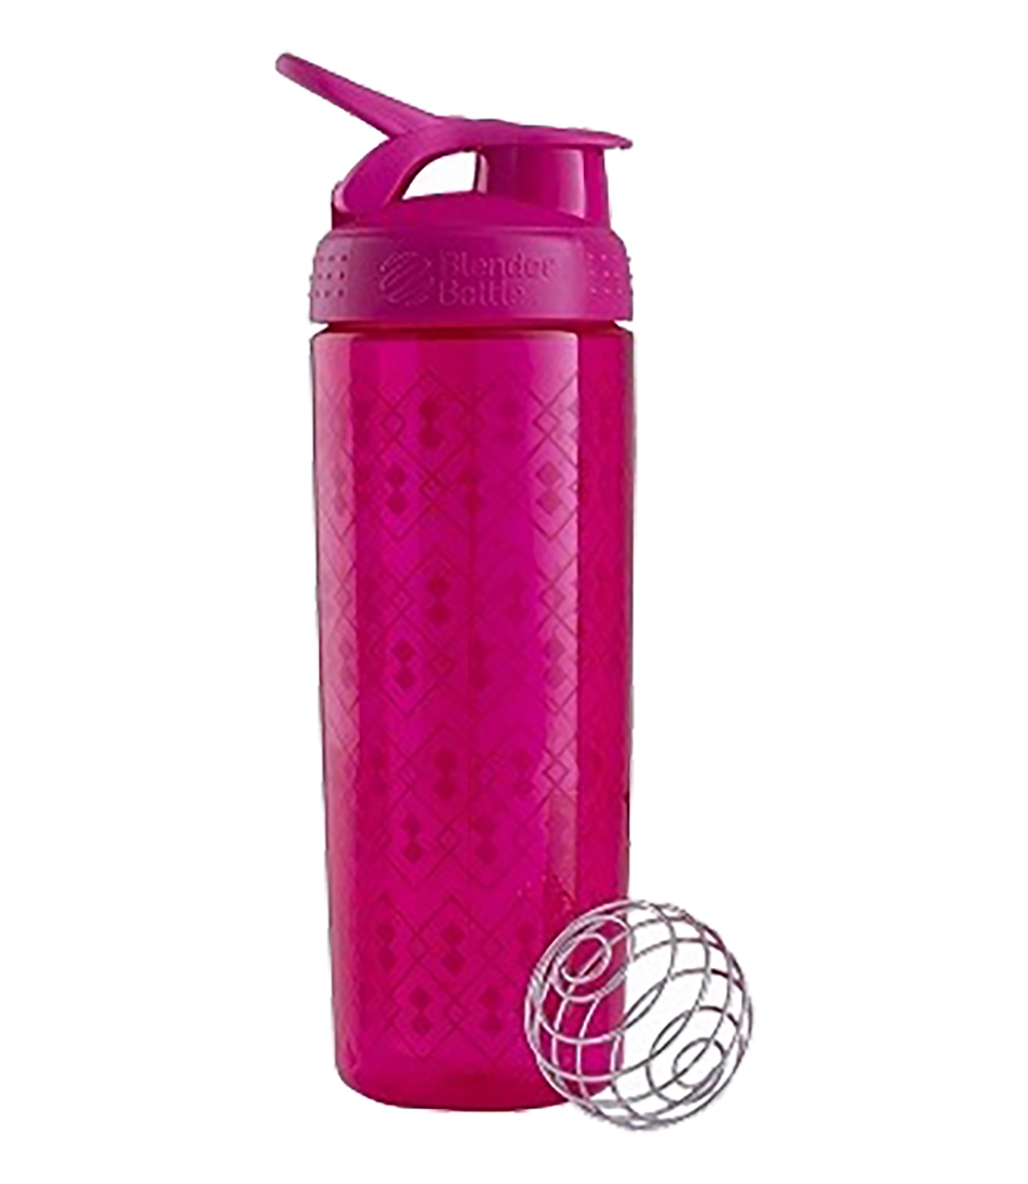 Blender Bottle Signature Sleek Pembe 700 ml